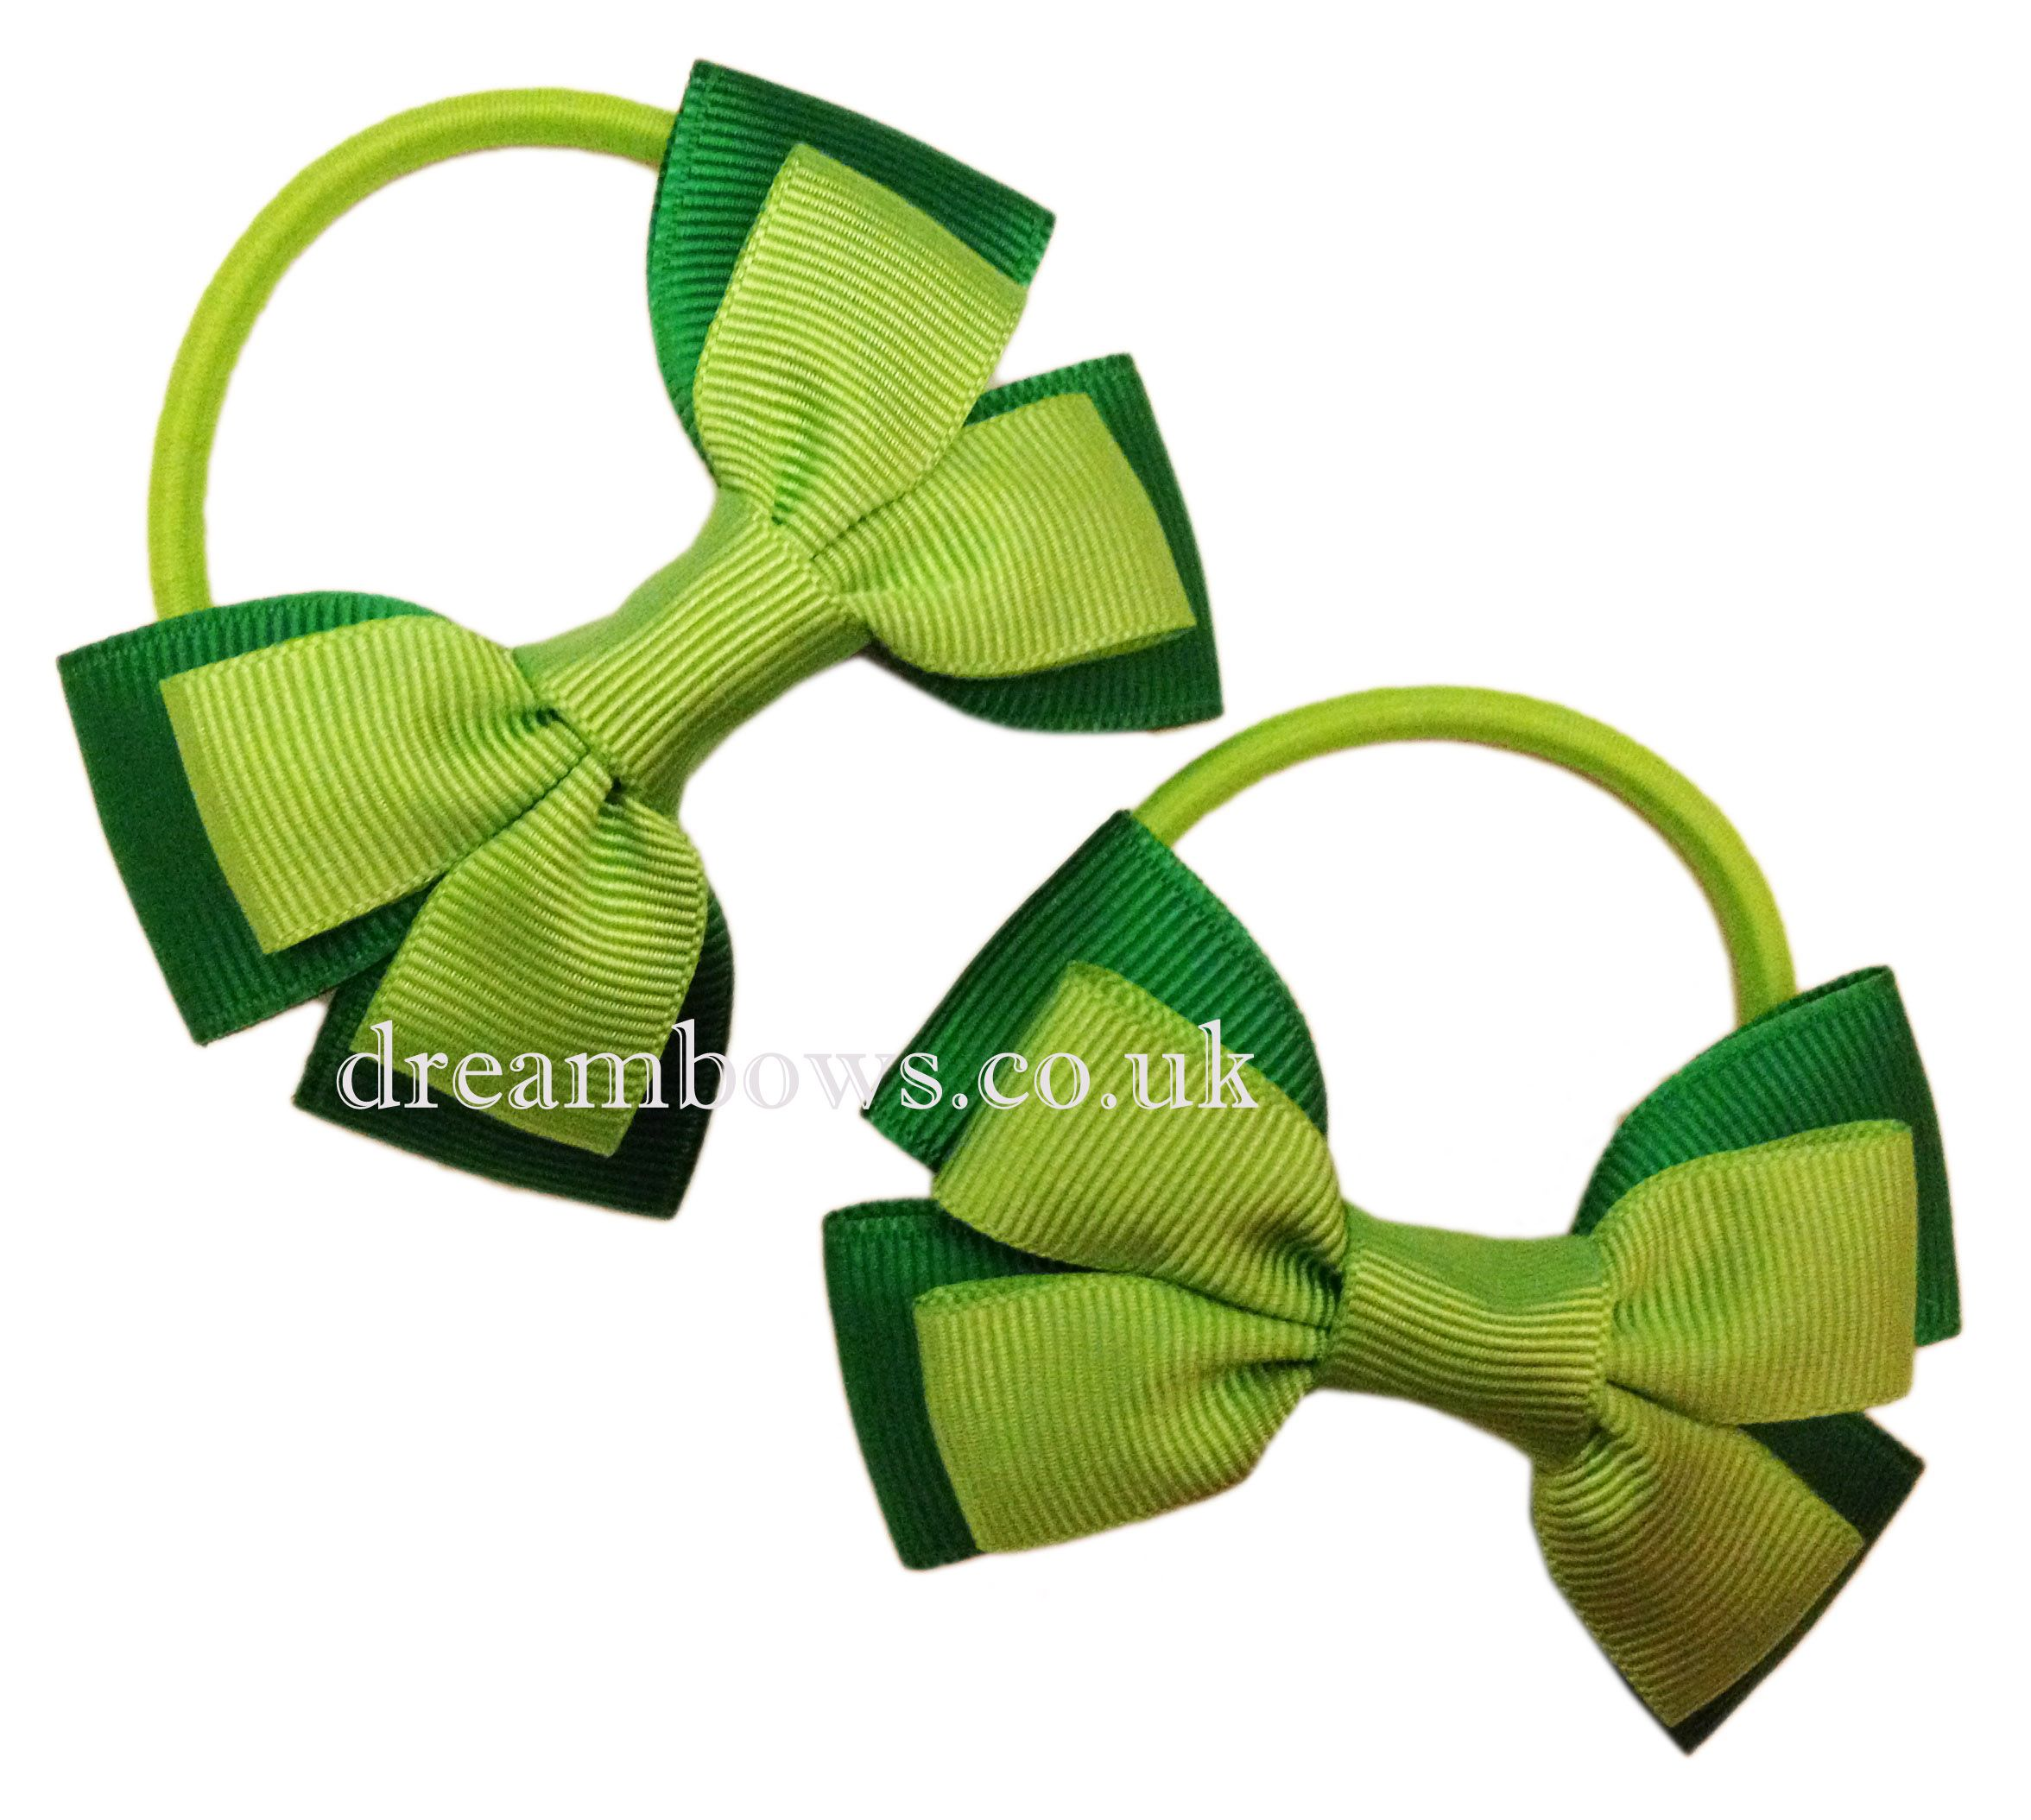 Emerald green and lime green grosgrain ribbon hair bows on thick bobbles -  £2.50 a pair at www.dreambows.co.uk green hair bows cd68e09f160